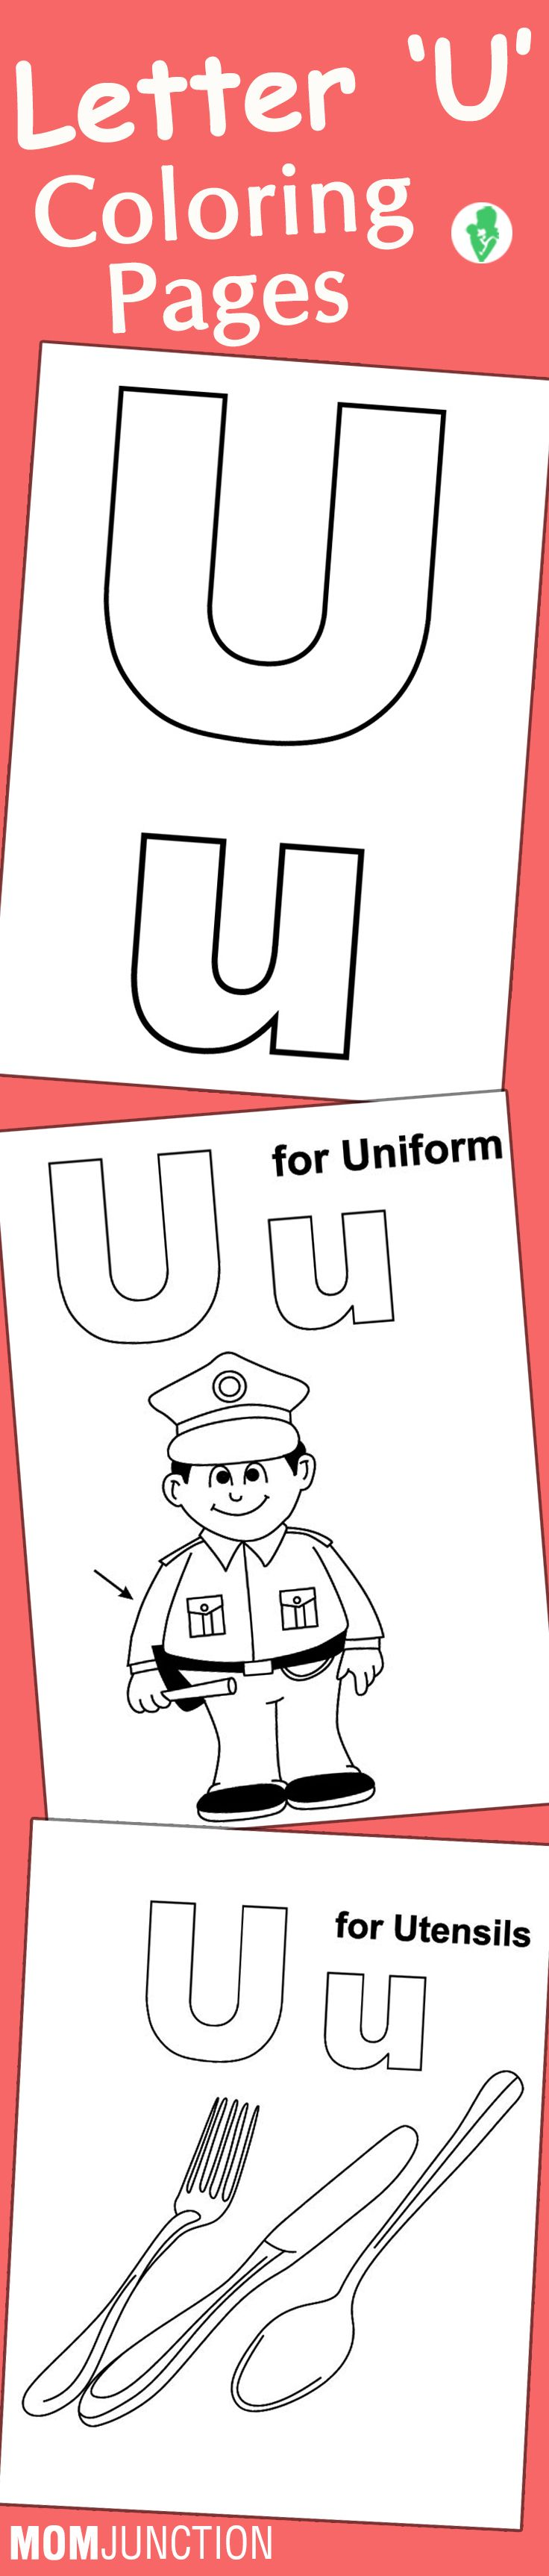 Q and u wedding coloring pages - Letter U Coloring Pages Free Printables